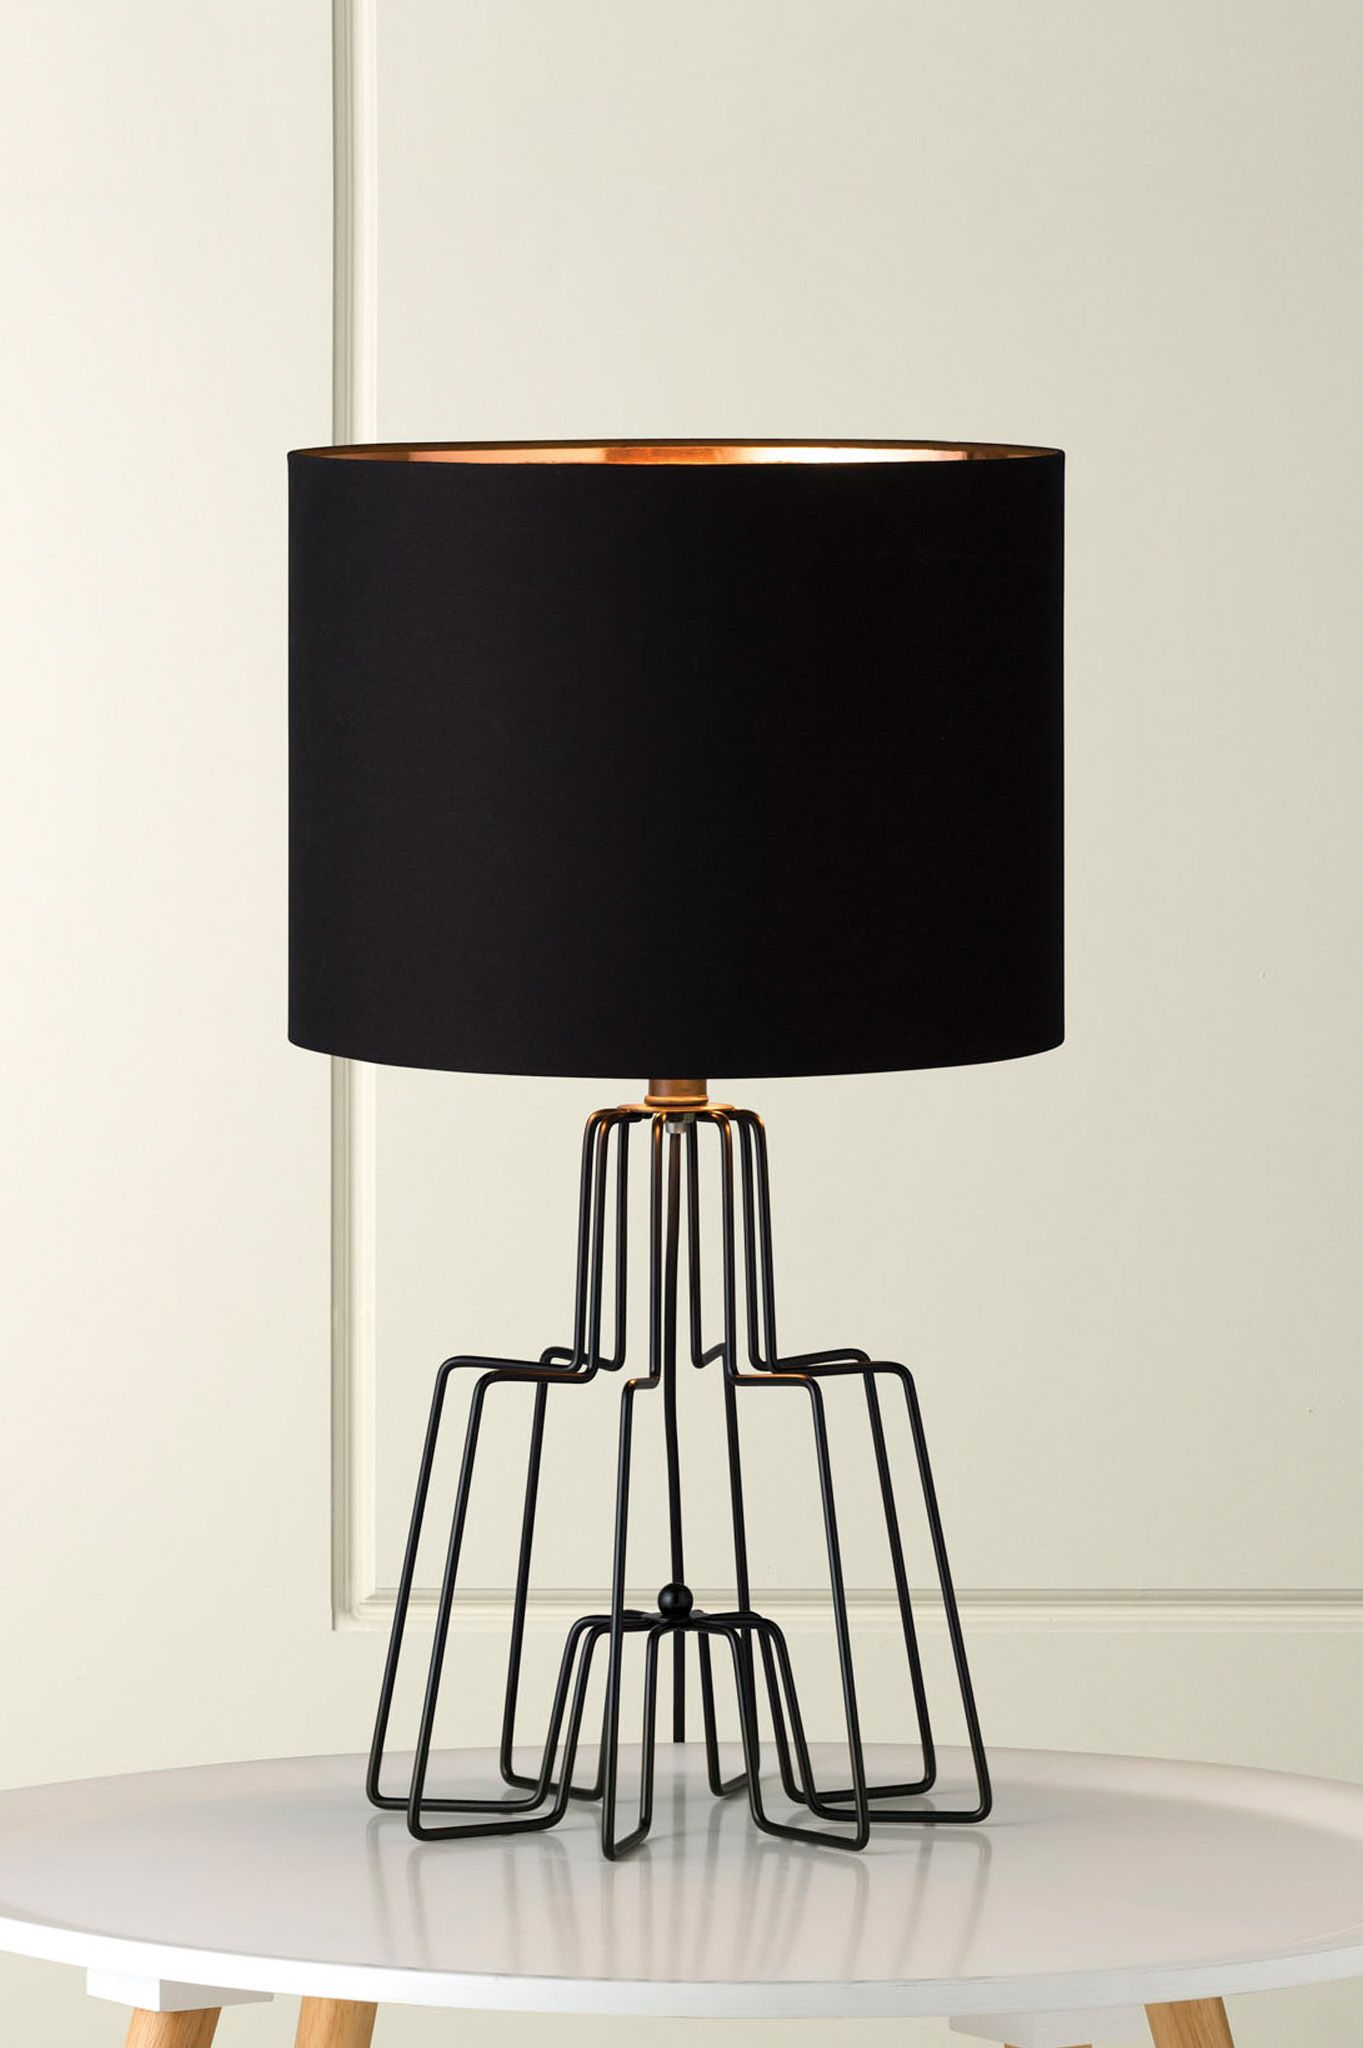 1130 Kink Black Wire Table Lamp with Black Shade and Copper Foil ...